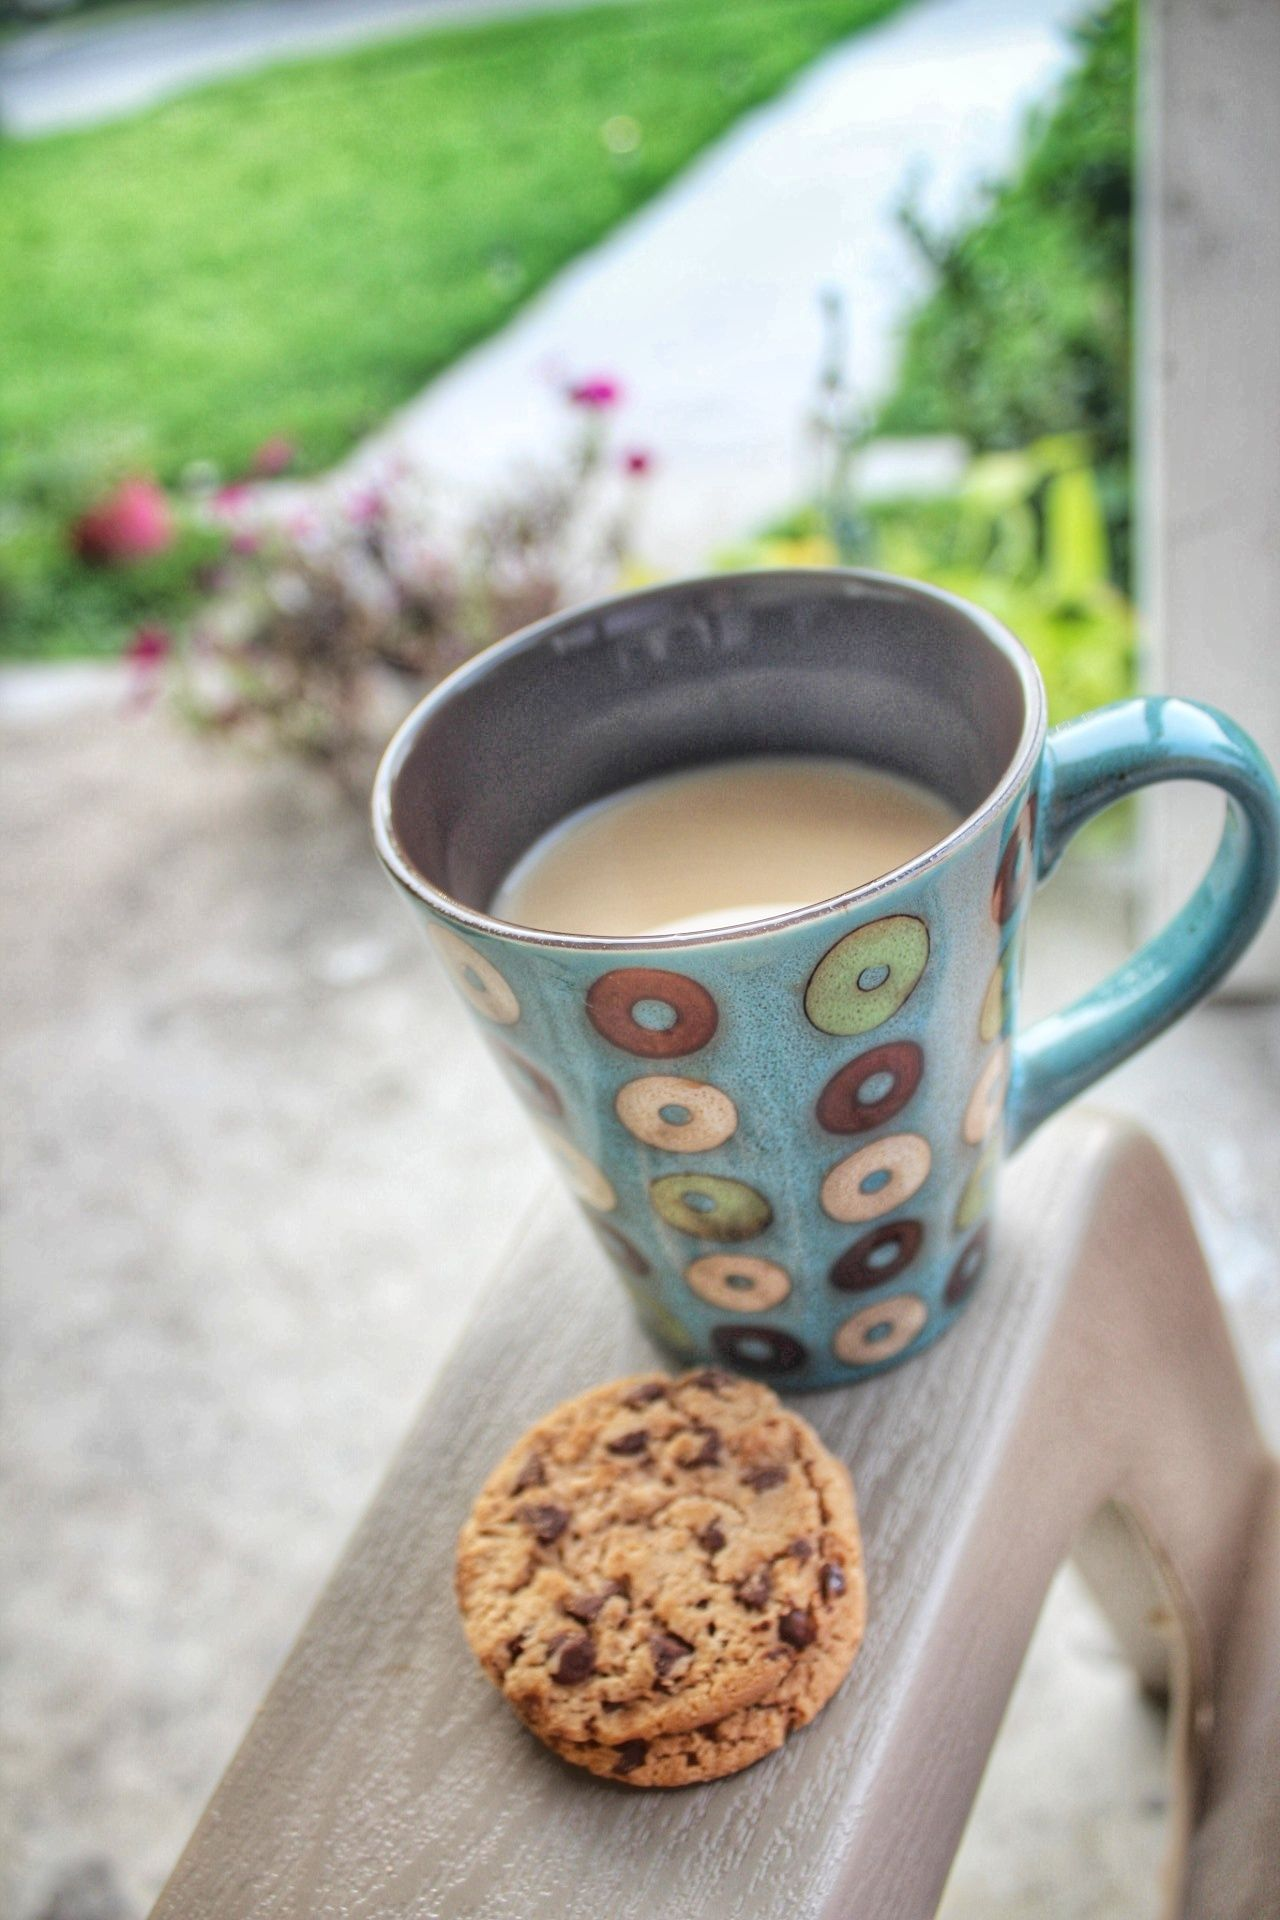 Cookie Sweet Food Coffee Break Day No People Outdoors Close-up Freshness Early Morning Early Morning Sky Fresh Morning Air